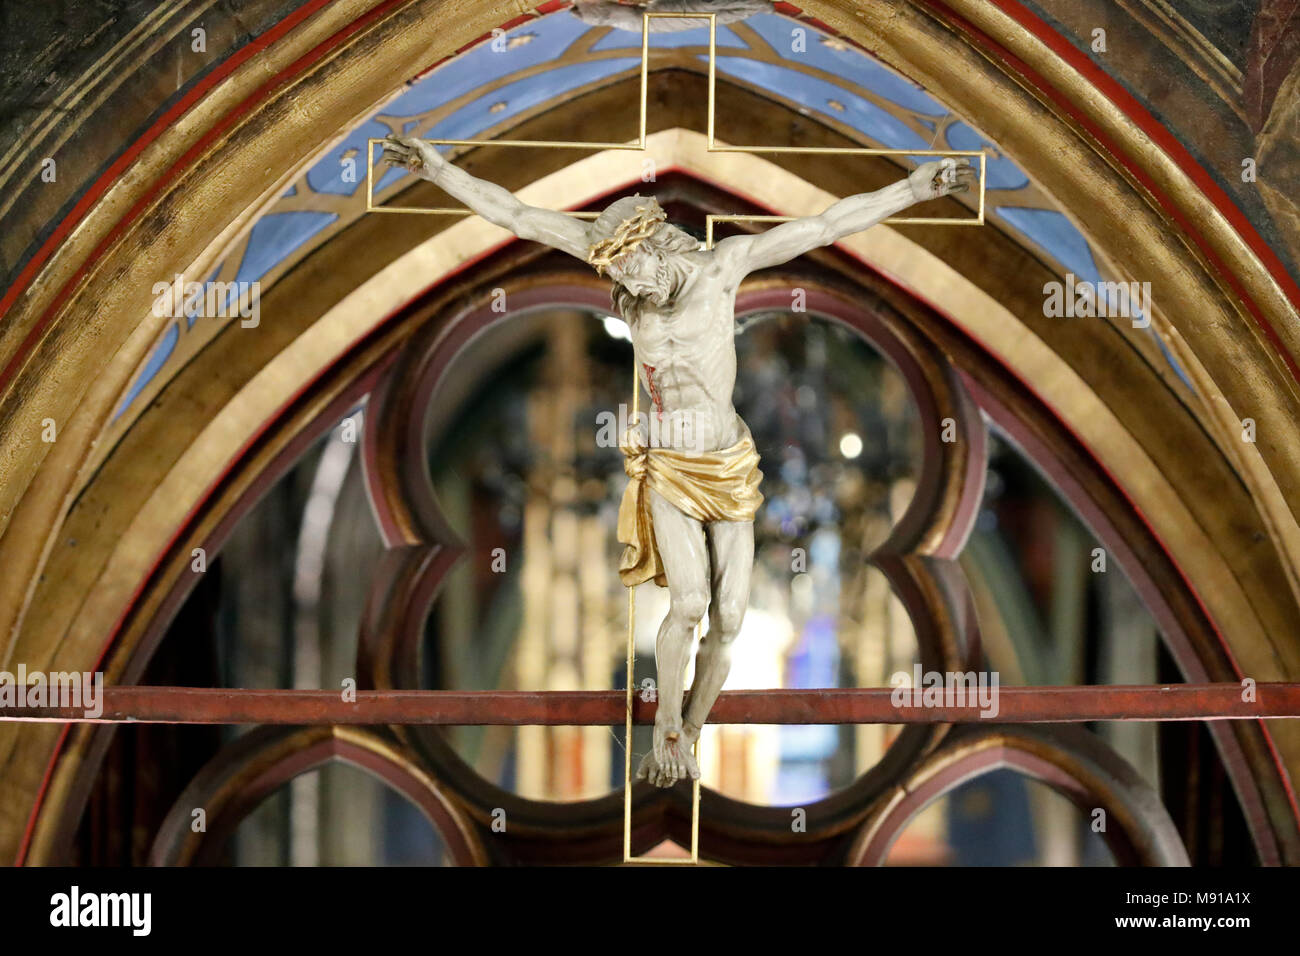 Saint-Pierre-le-Jeune Protestant Church.  The rood screen. Jesus on the cross.  Strasbourg. France. - Stock Image